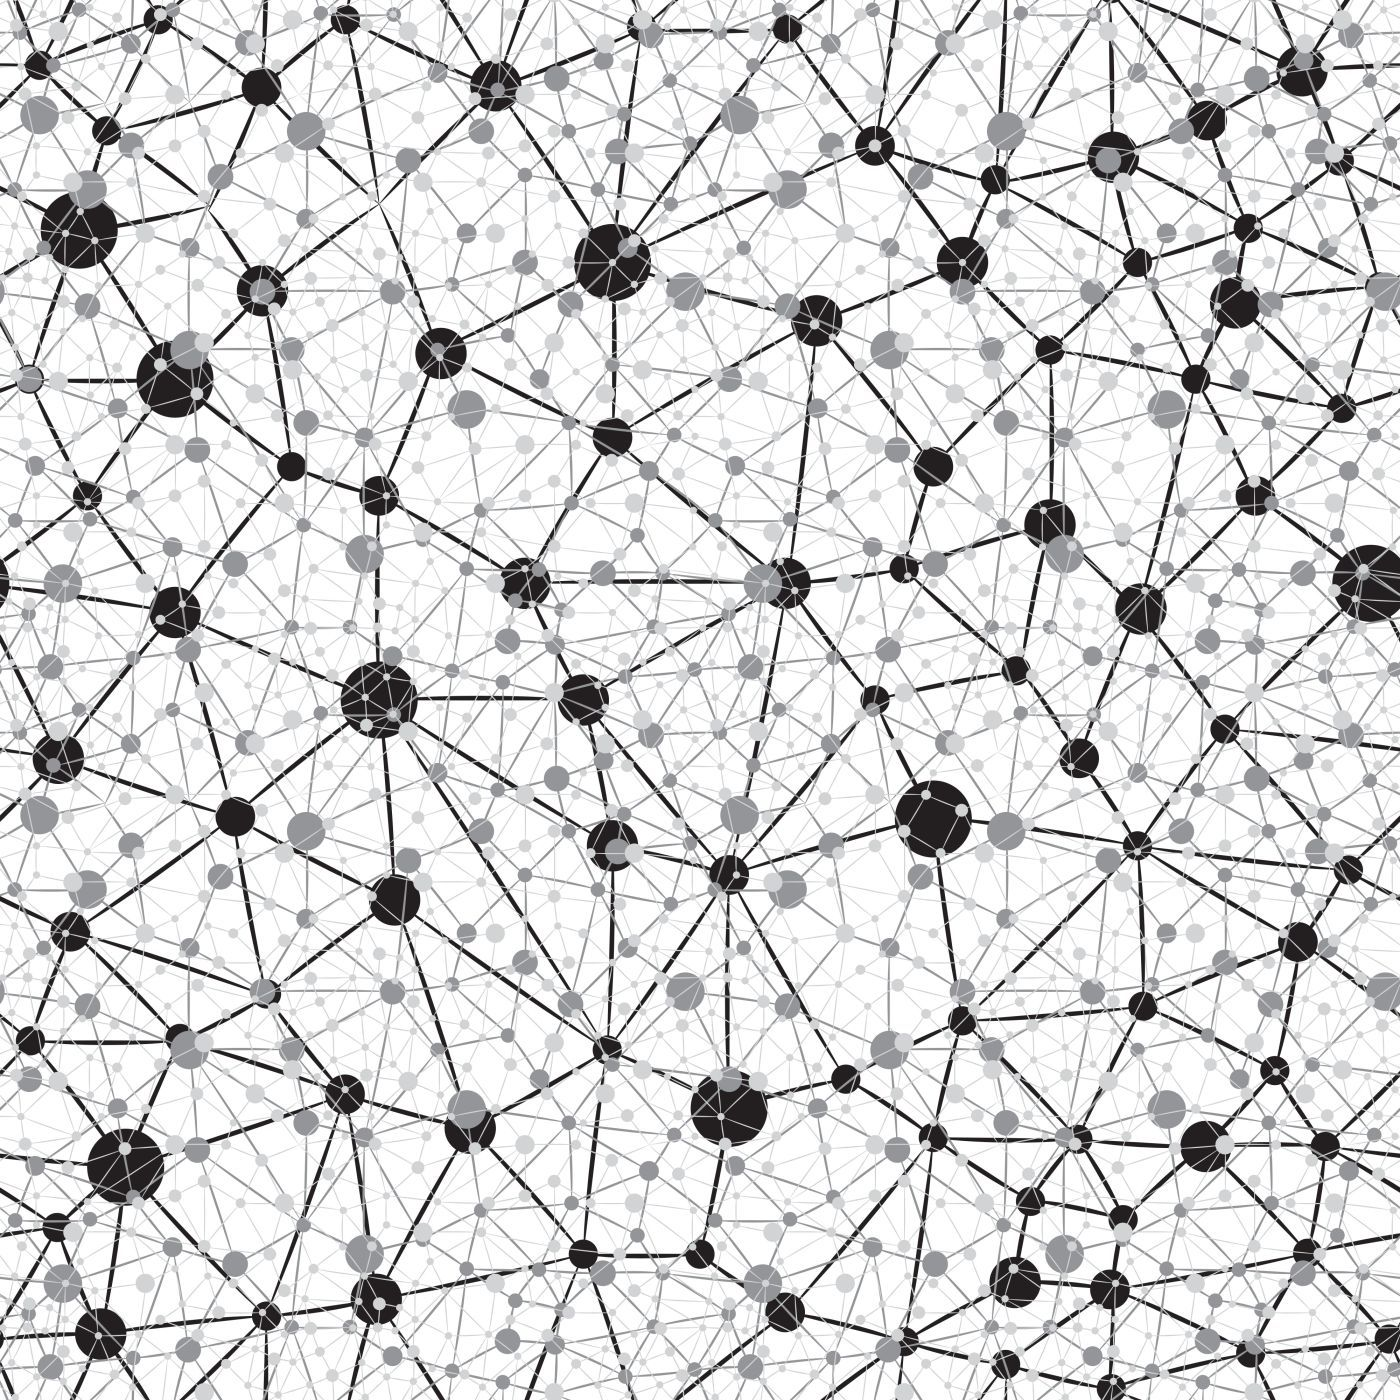 New to deep learning? Here are 4 easy lessons from Google